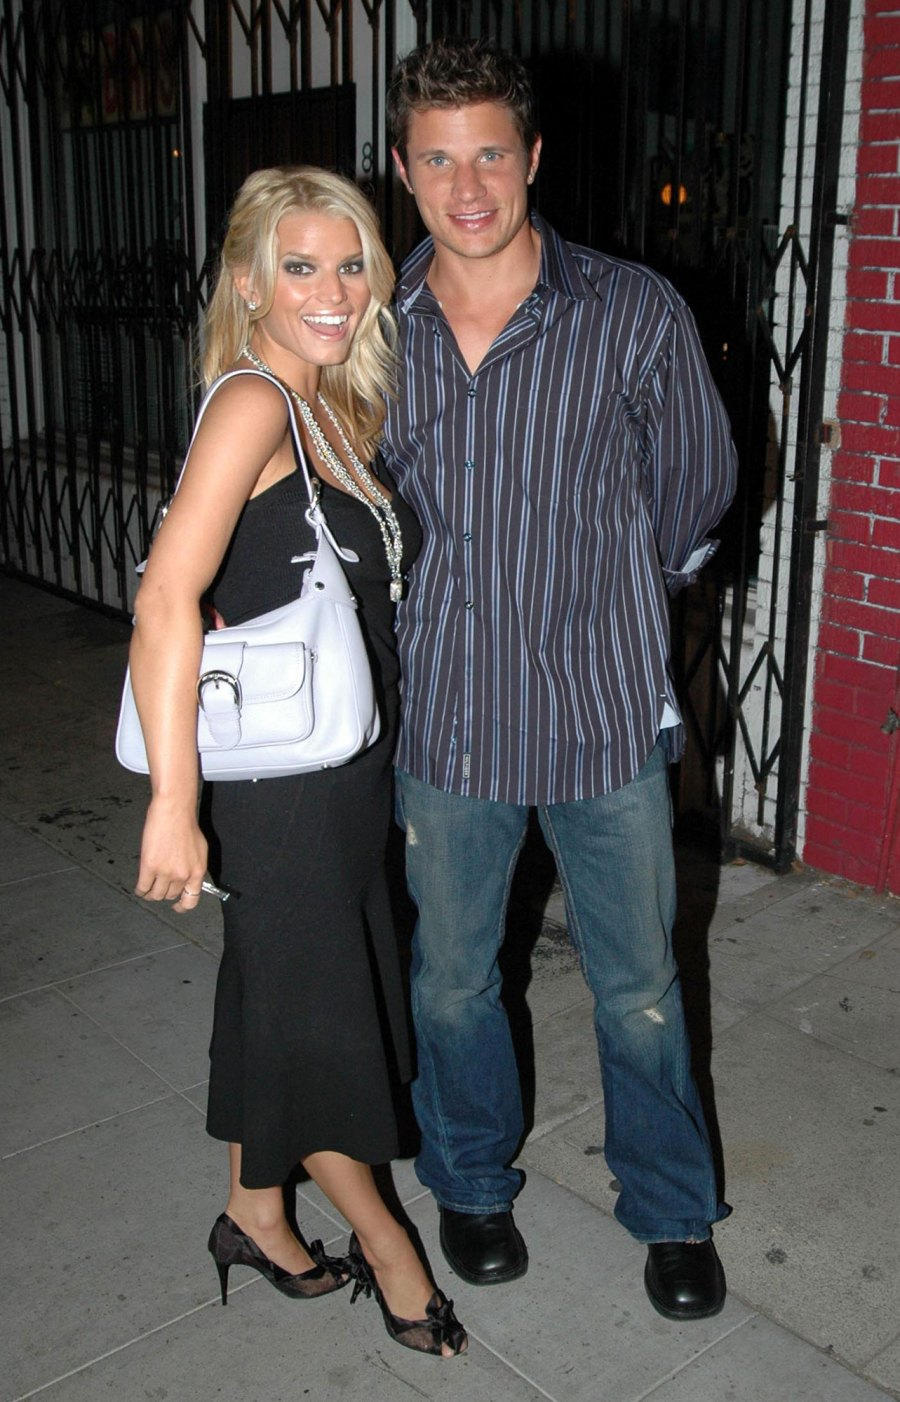 April 2006 Jessica Simpson and Nick Lachey's Candid Quotes About Their Failed Marriage